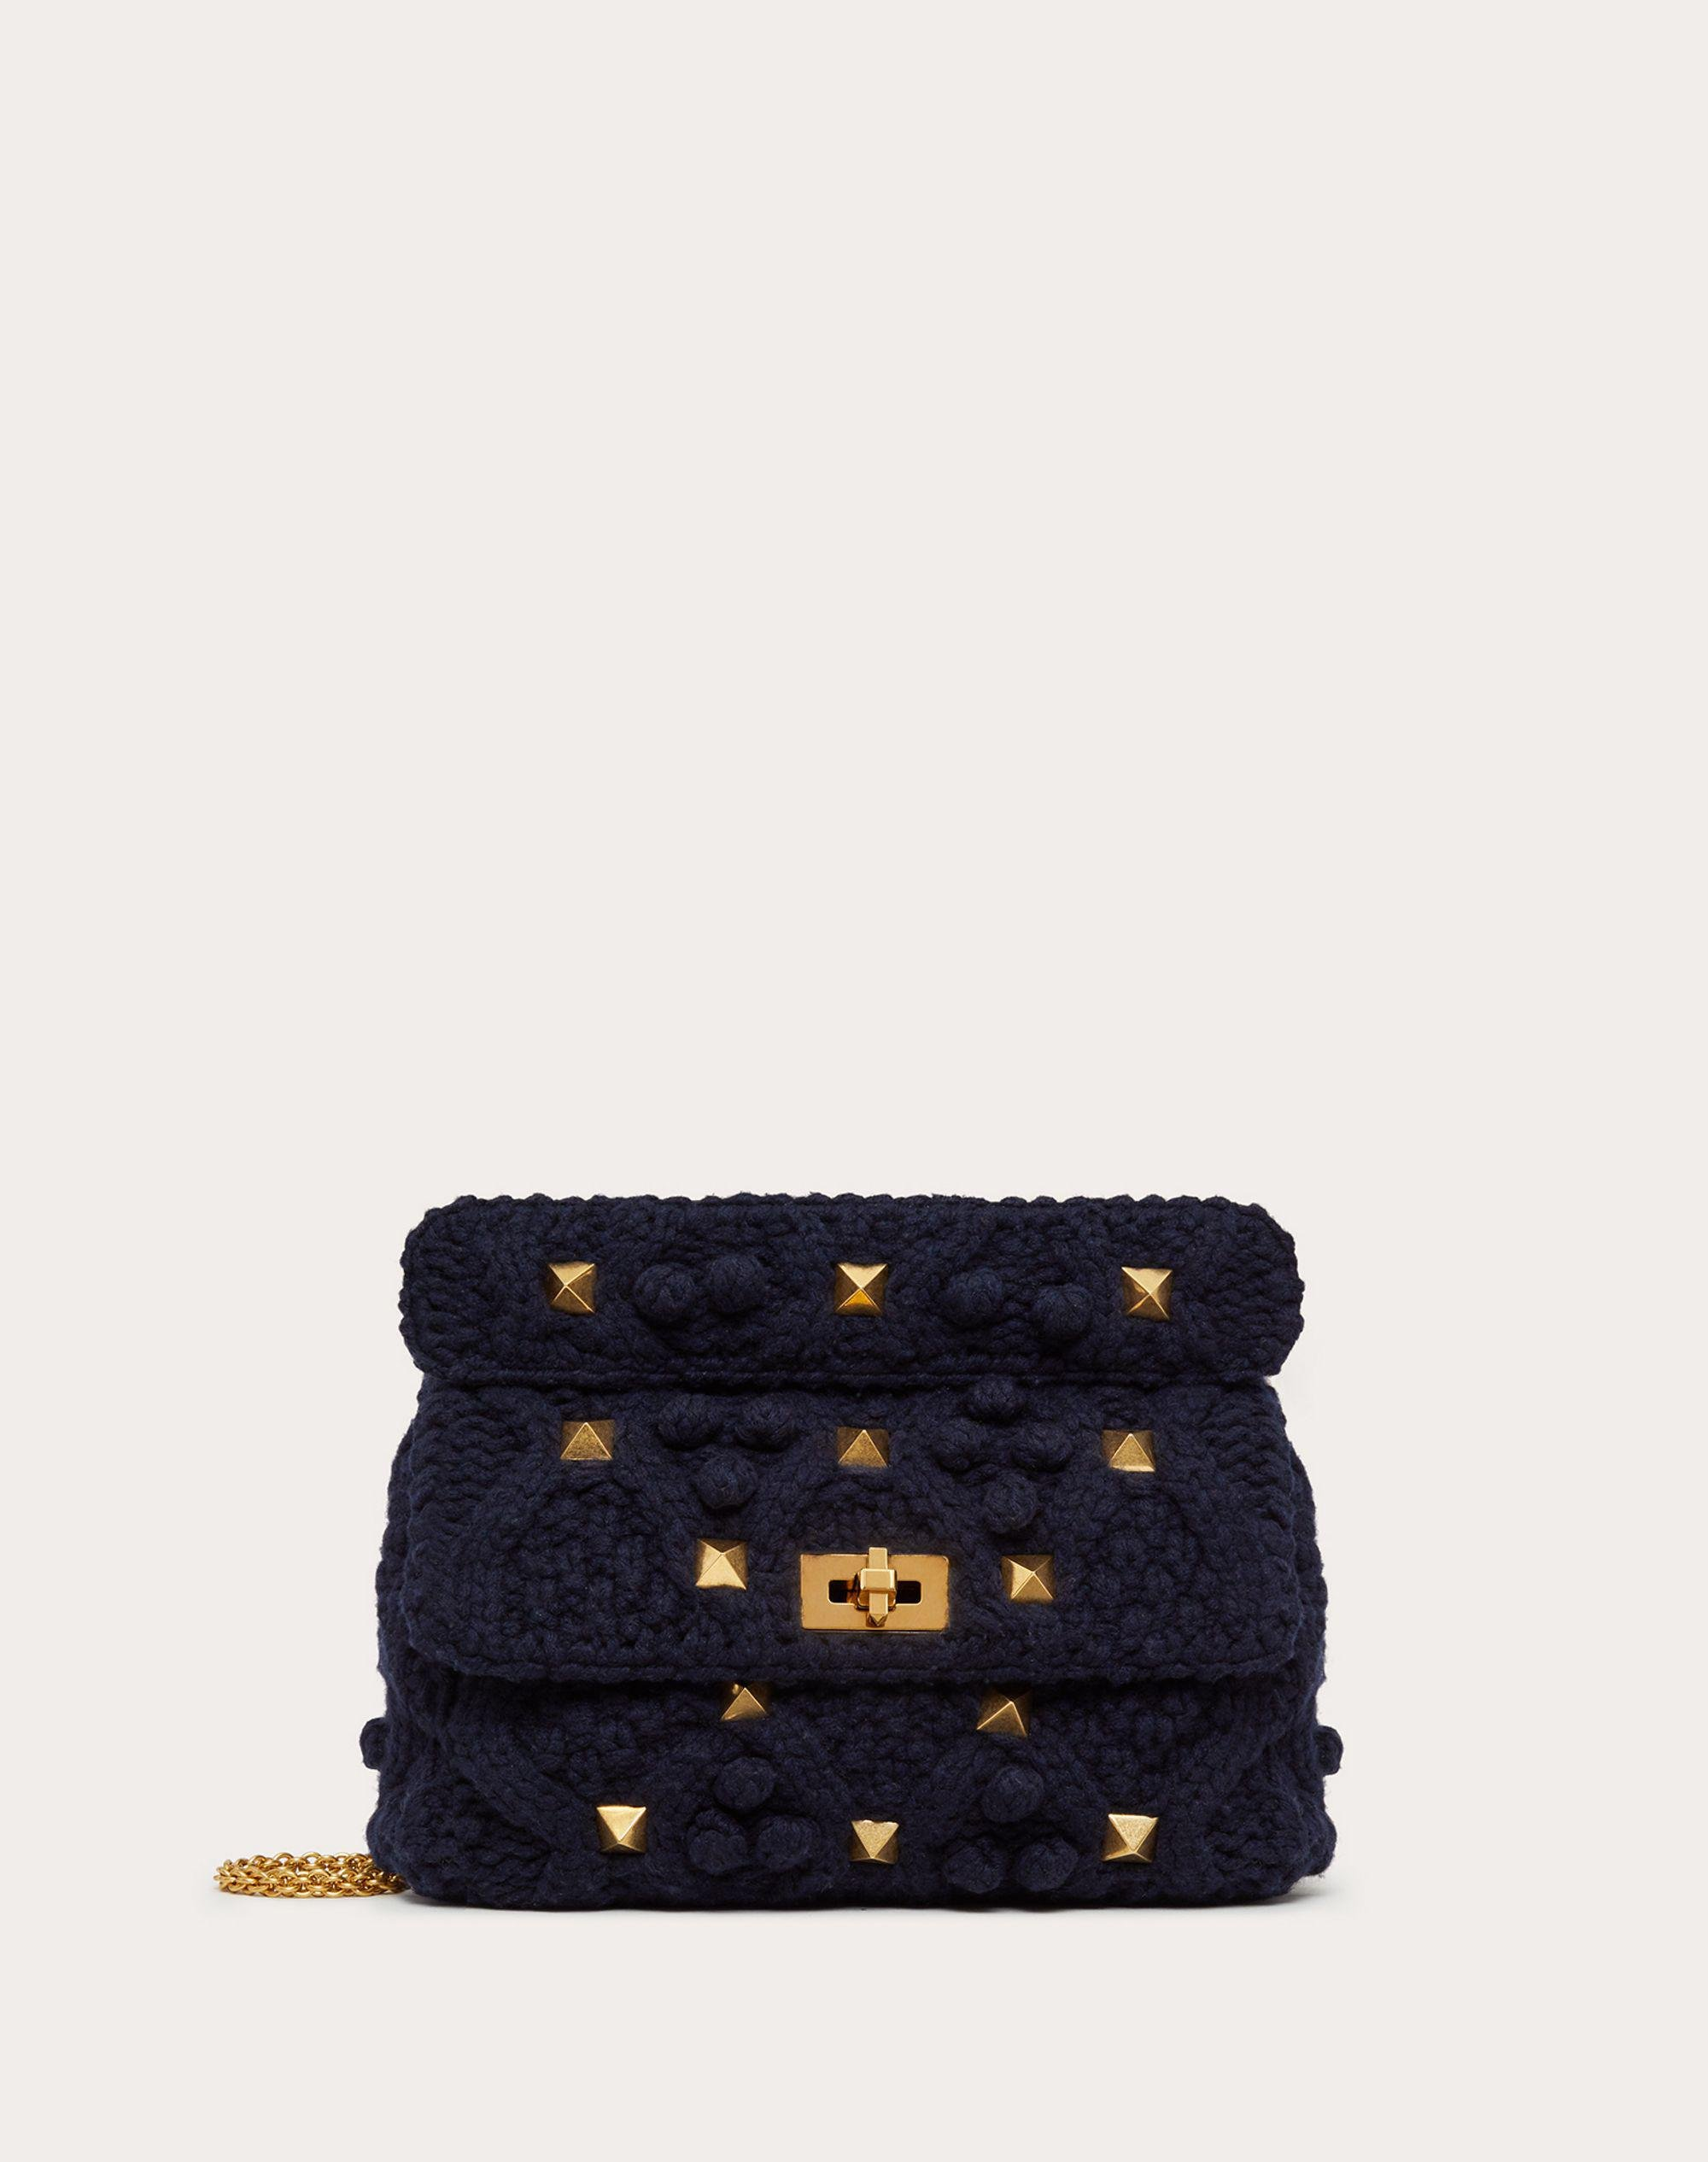 LARGE CASHMERE ROMAN STUD THE SHOULDER BAG WITH CHAIN